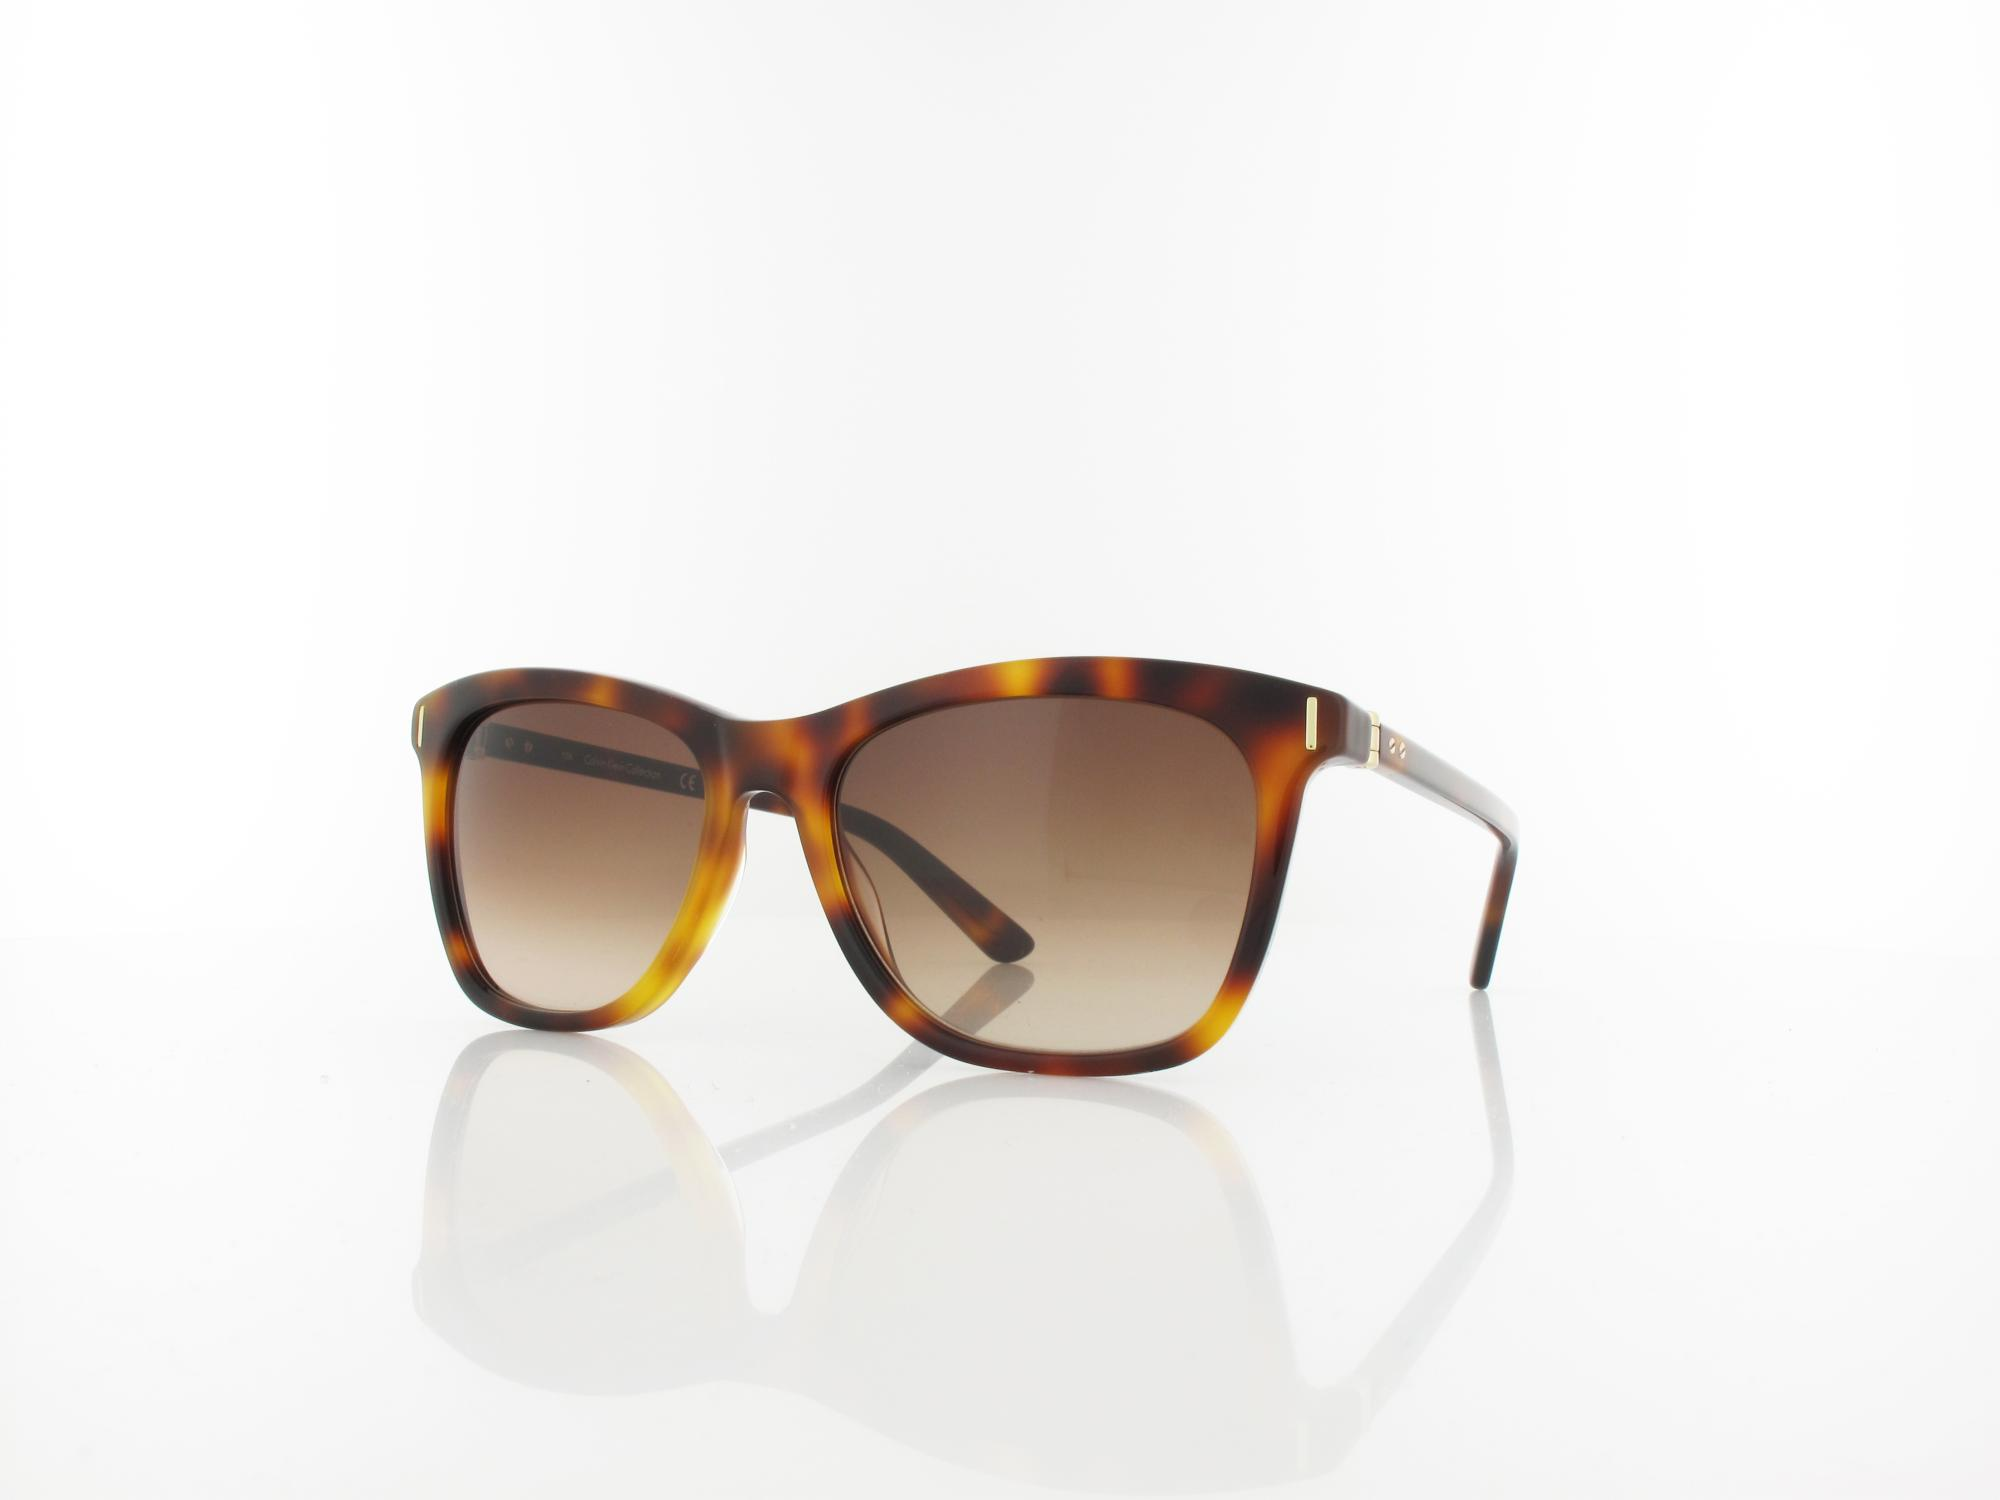 Calvin Klein | CK8510S 218 55 | soft tortoise / brown gradient